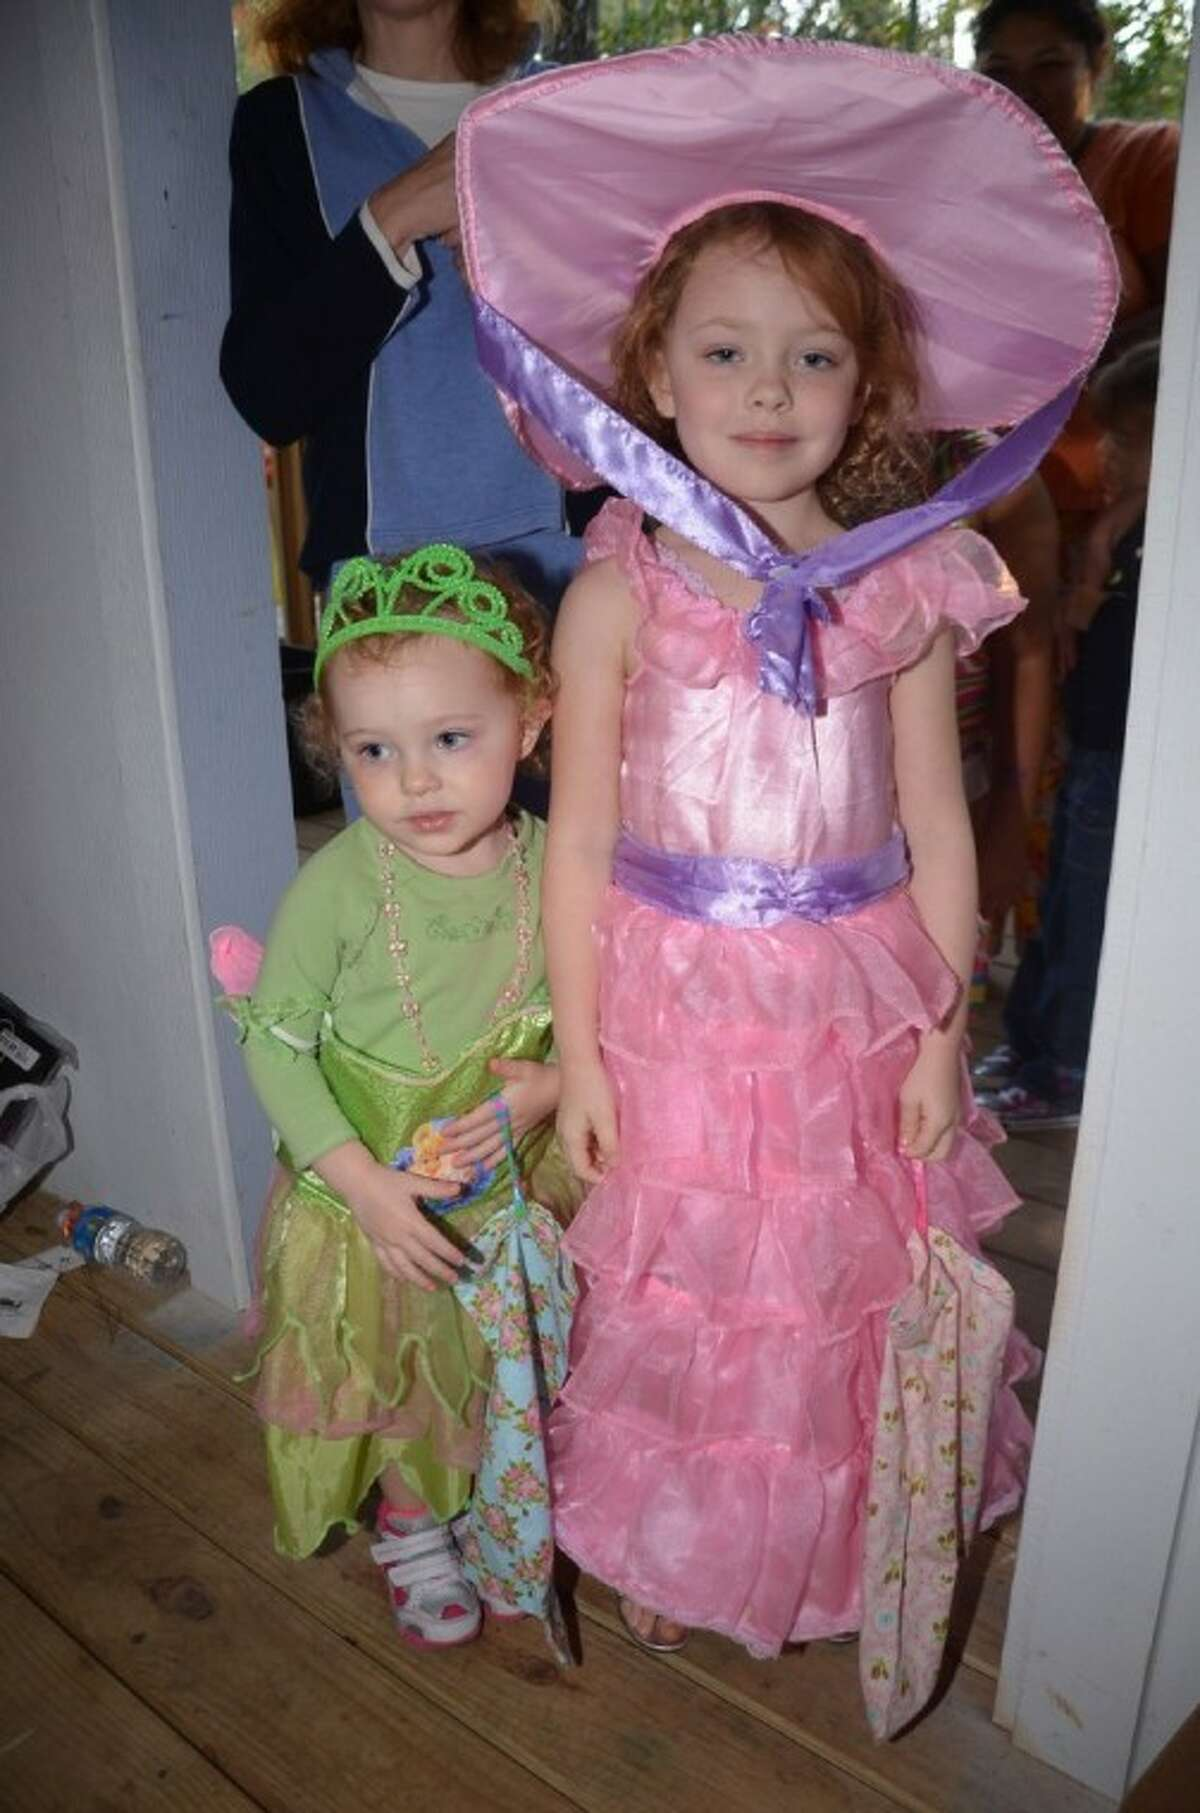 The annual Halloween at the Y presented by Walgreens will be at the Creekside YMCA Outdoor Adventure Center today starting at 4:30 p.m.